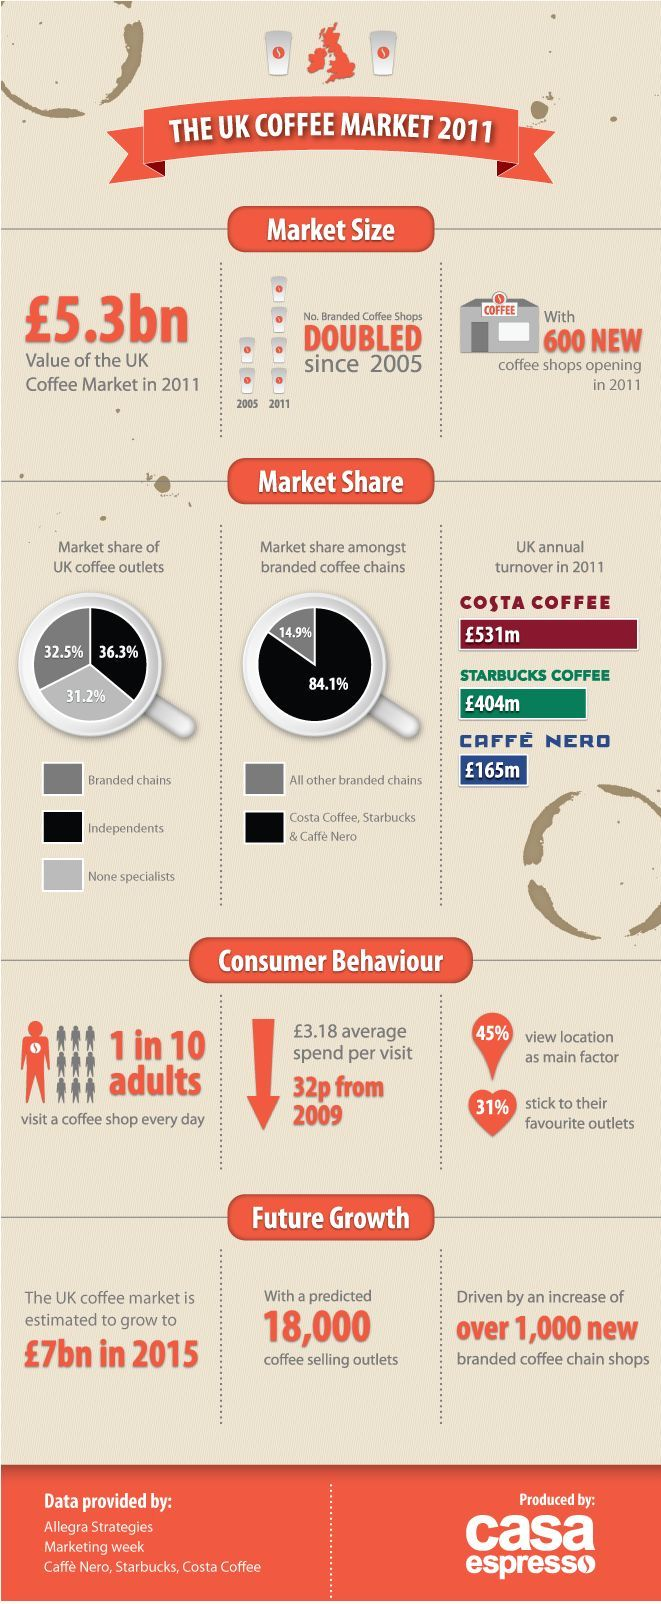 tokyo hot  e750 Food infographic A Look At The UK Coffee Market Infographic